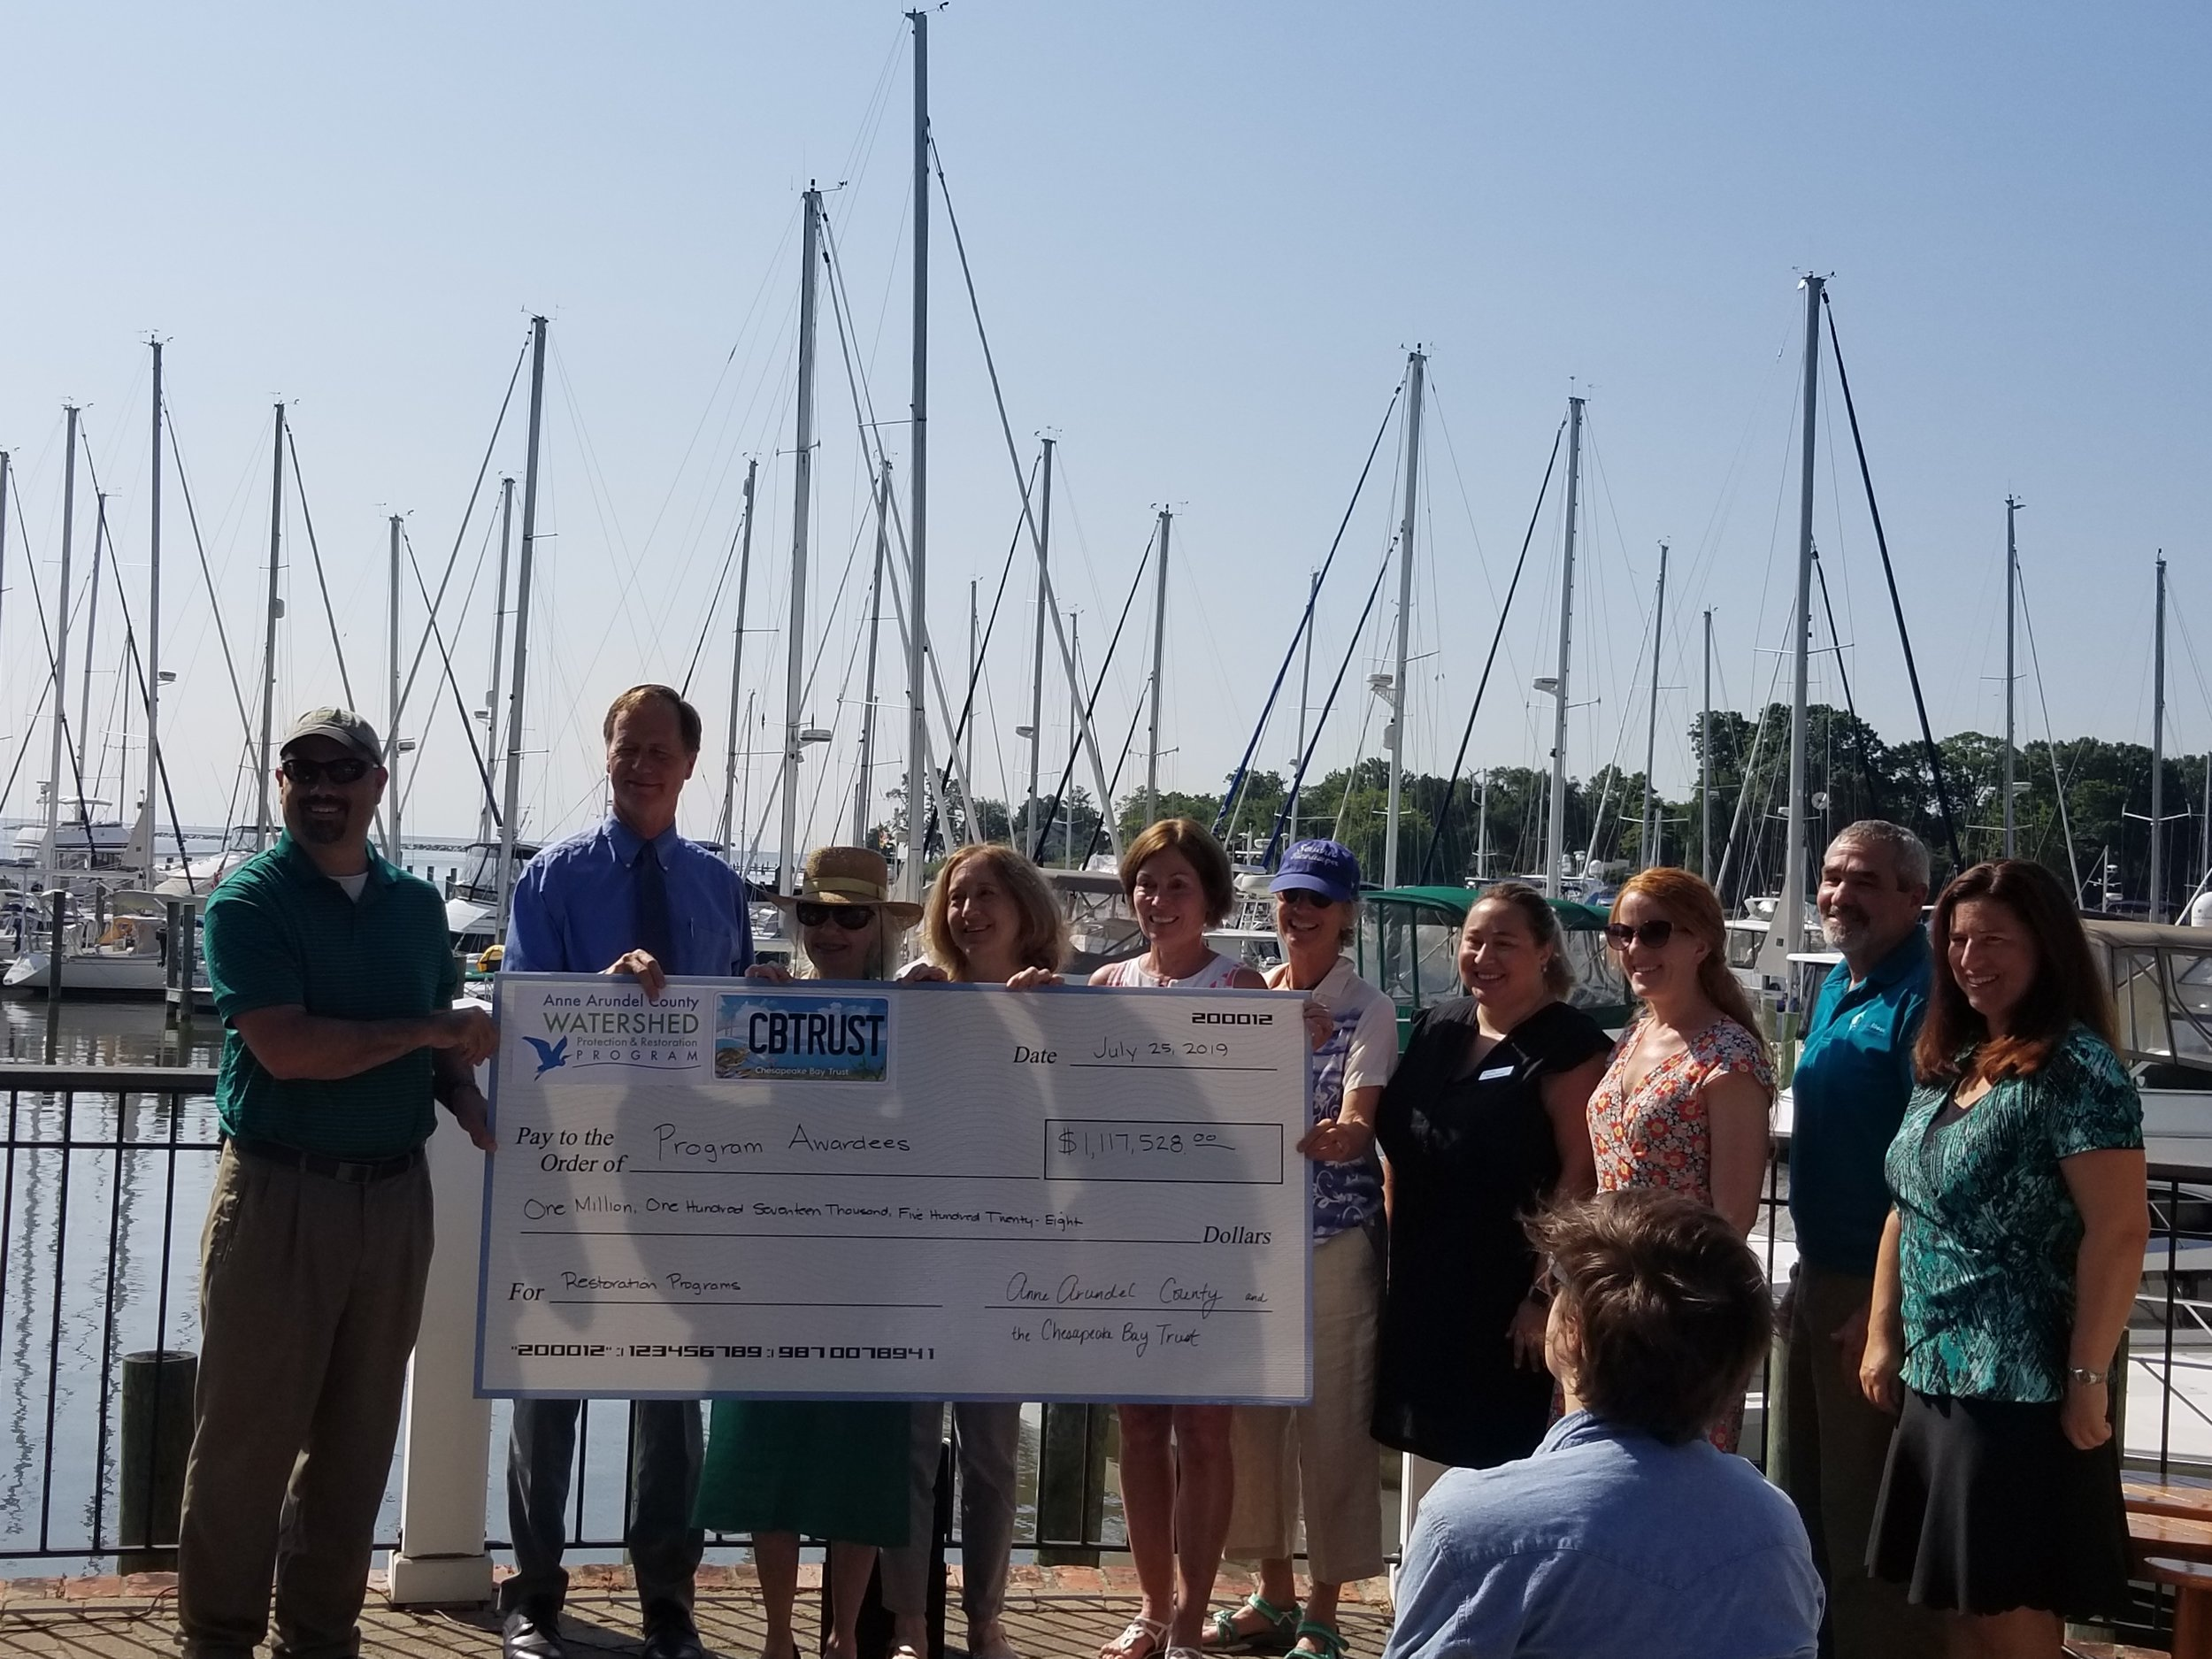 Severn Riverkeeper Sara Caldes and Winchester Community Leader Cathy Noon ceremonially accept funds from the Chesapeake Bay Trust and Anne Arundel County at a press event on Thursday. County Executive Steuart Pittman and Watershed Protection and Restoration Services Administrator Erik Michelsen join in holding the check along with three other grantees.